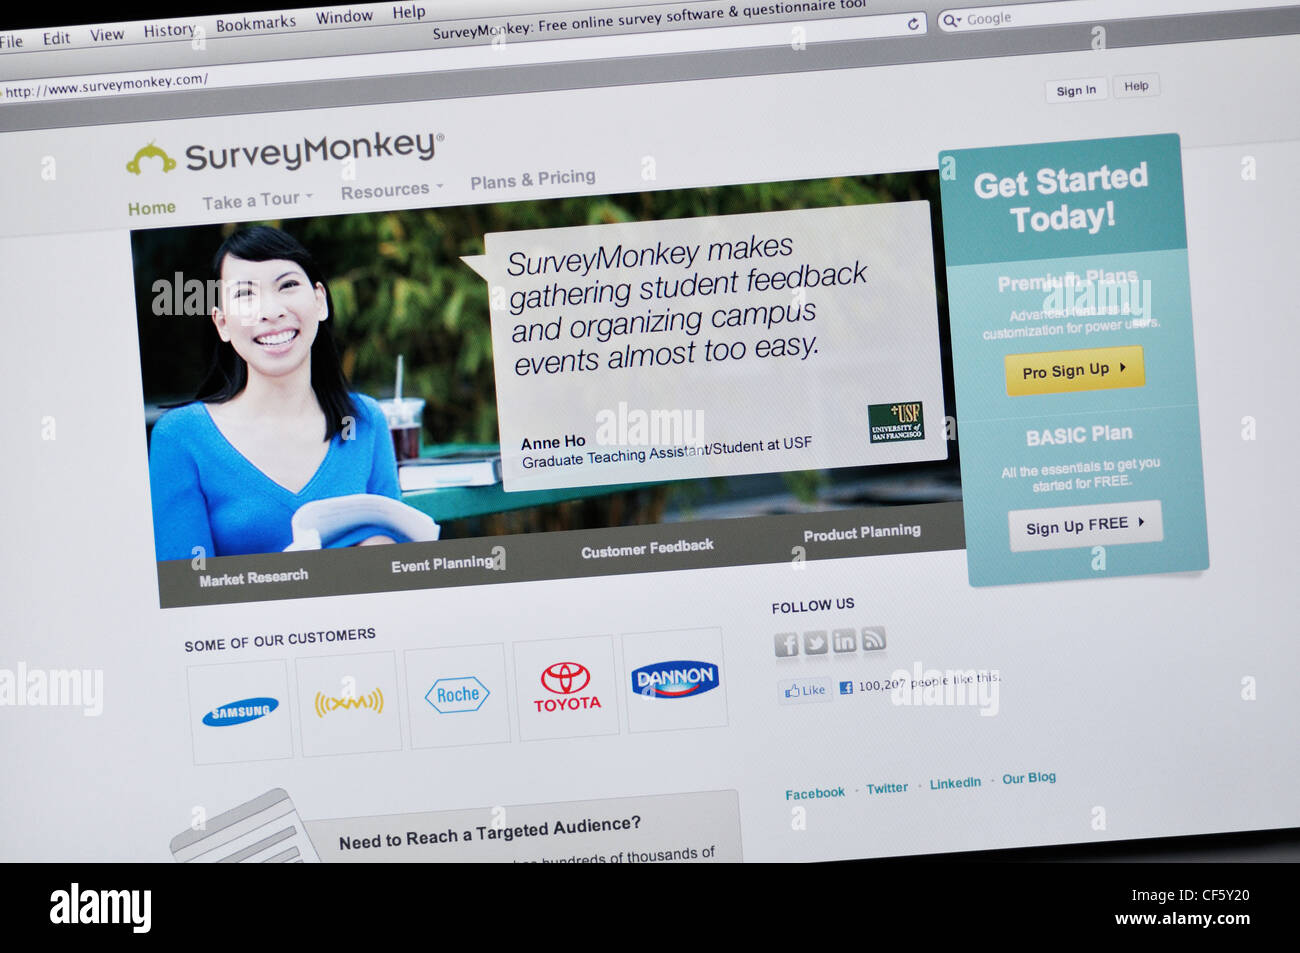 Survey Monkey website - Free online survey software & questionnaire tool - Stock Image